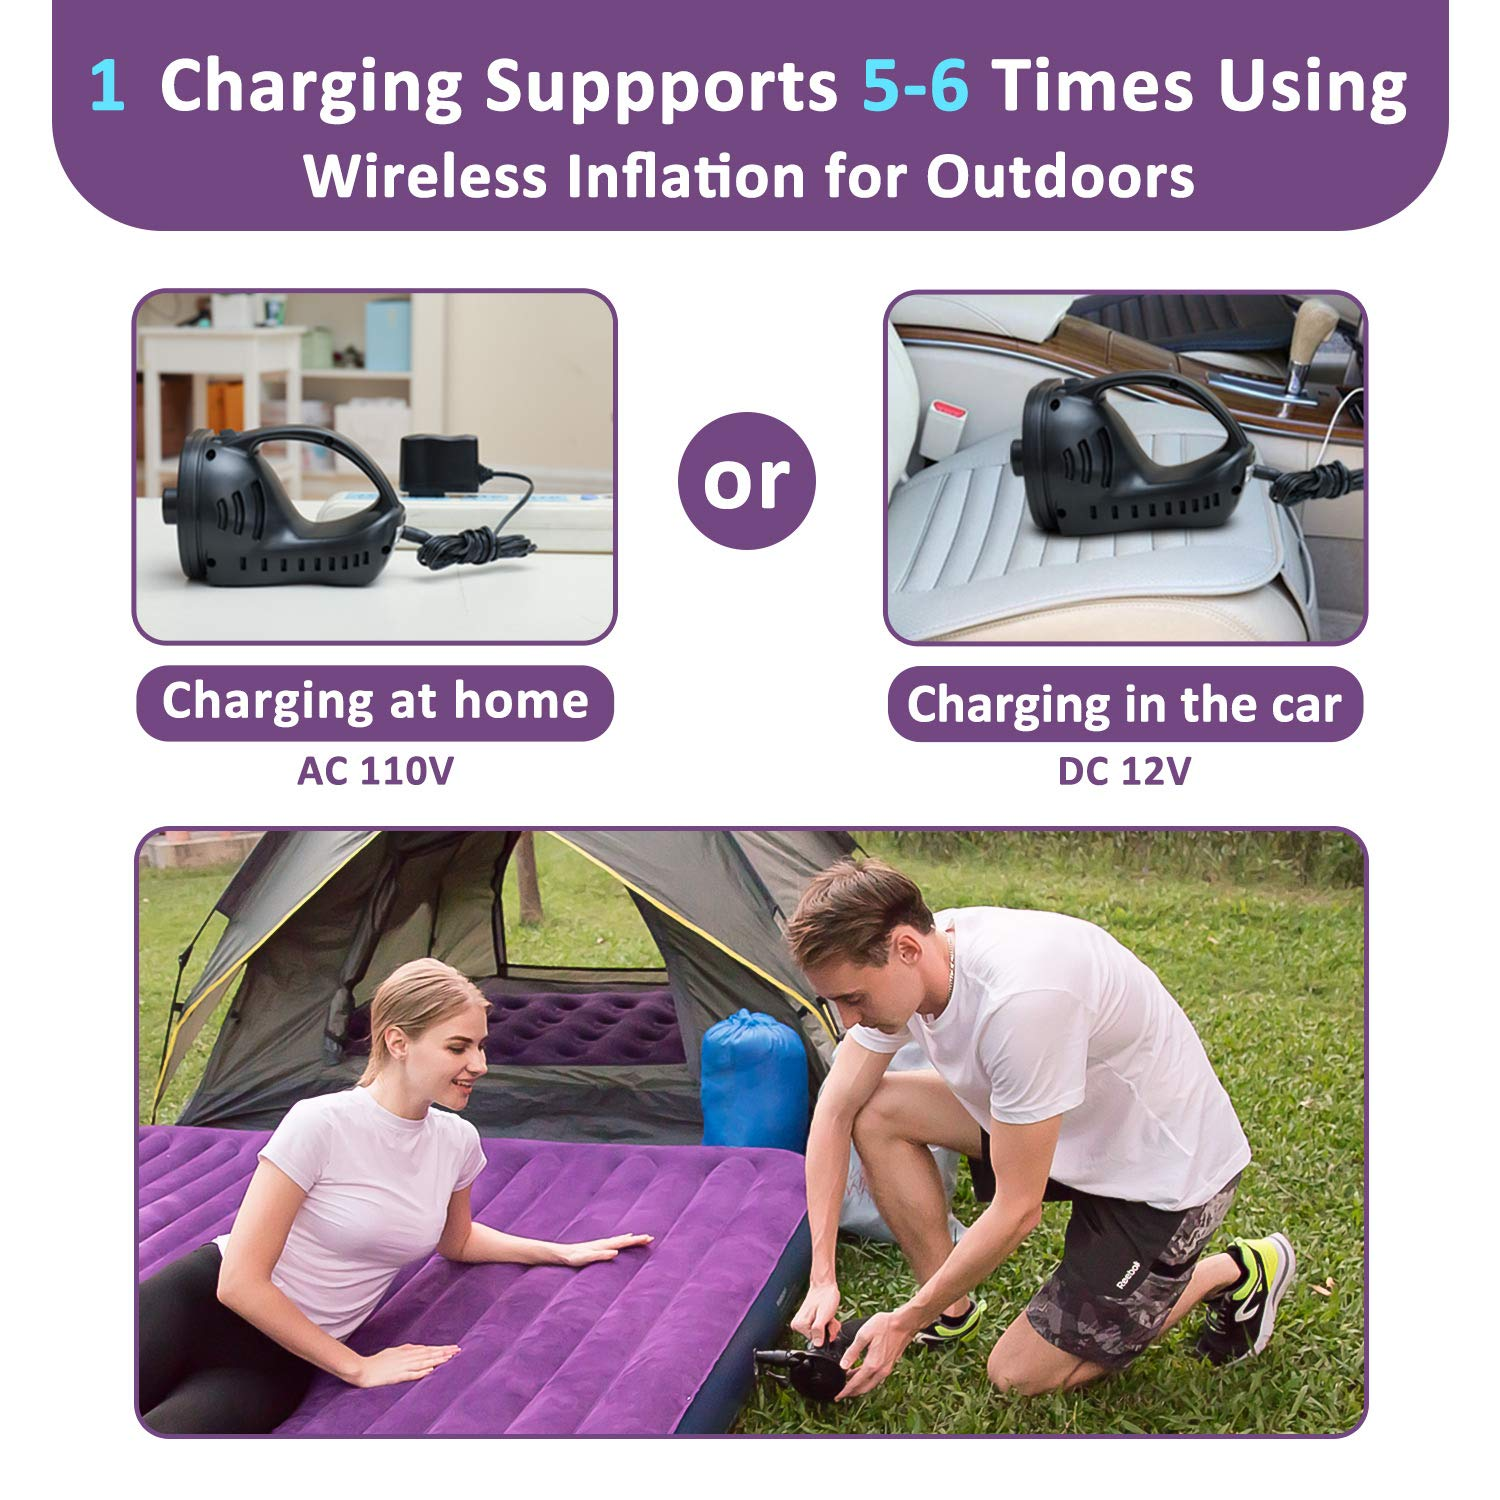 OlarHike Queen Air Mattress, Inflatable Single High Airbed for Guests, Blow up Raised Air Bed for Camping with Electric Air Battery Pump, Purple by OlarHike (Image #5)